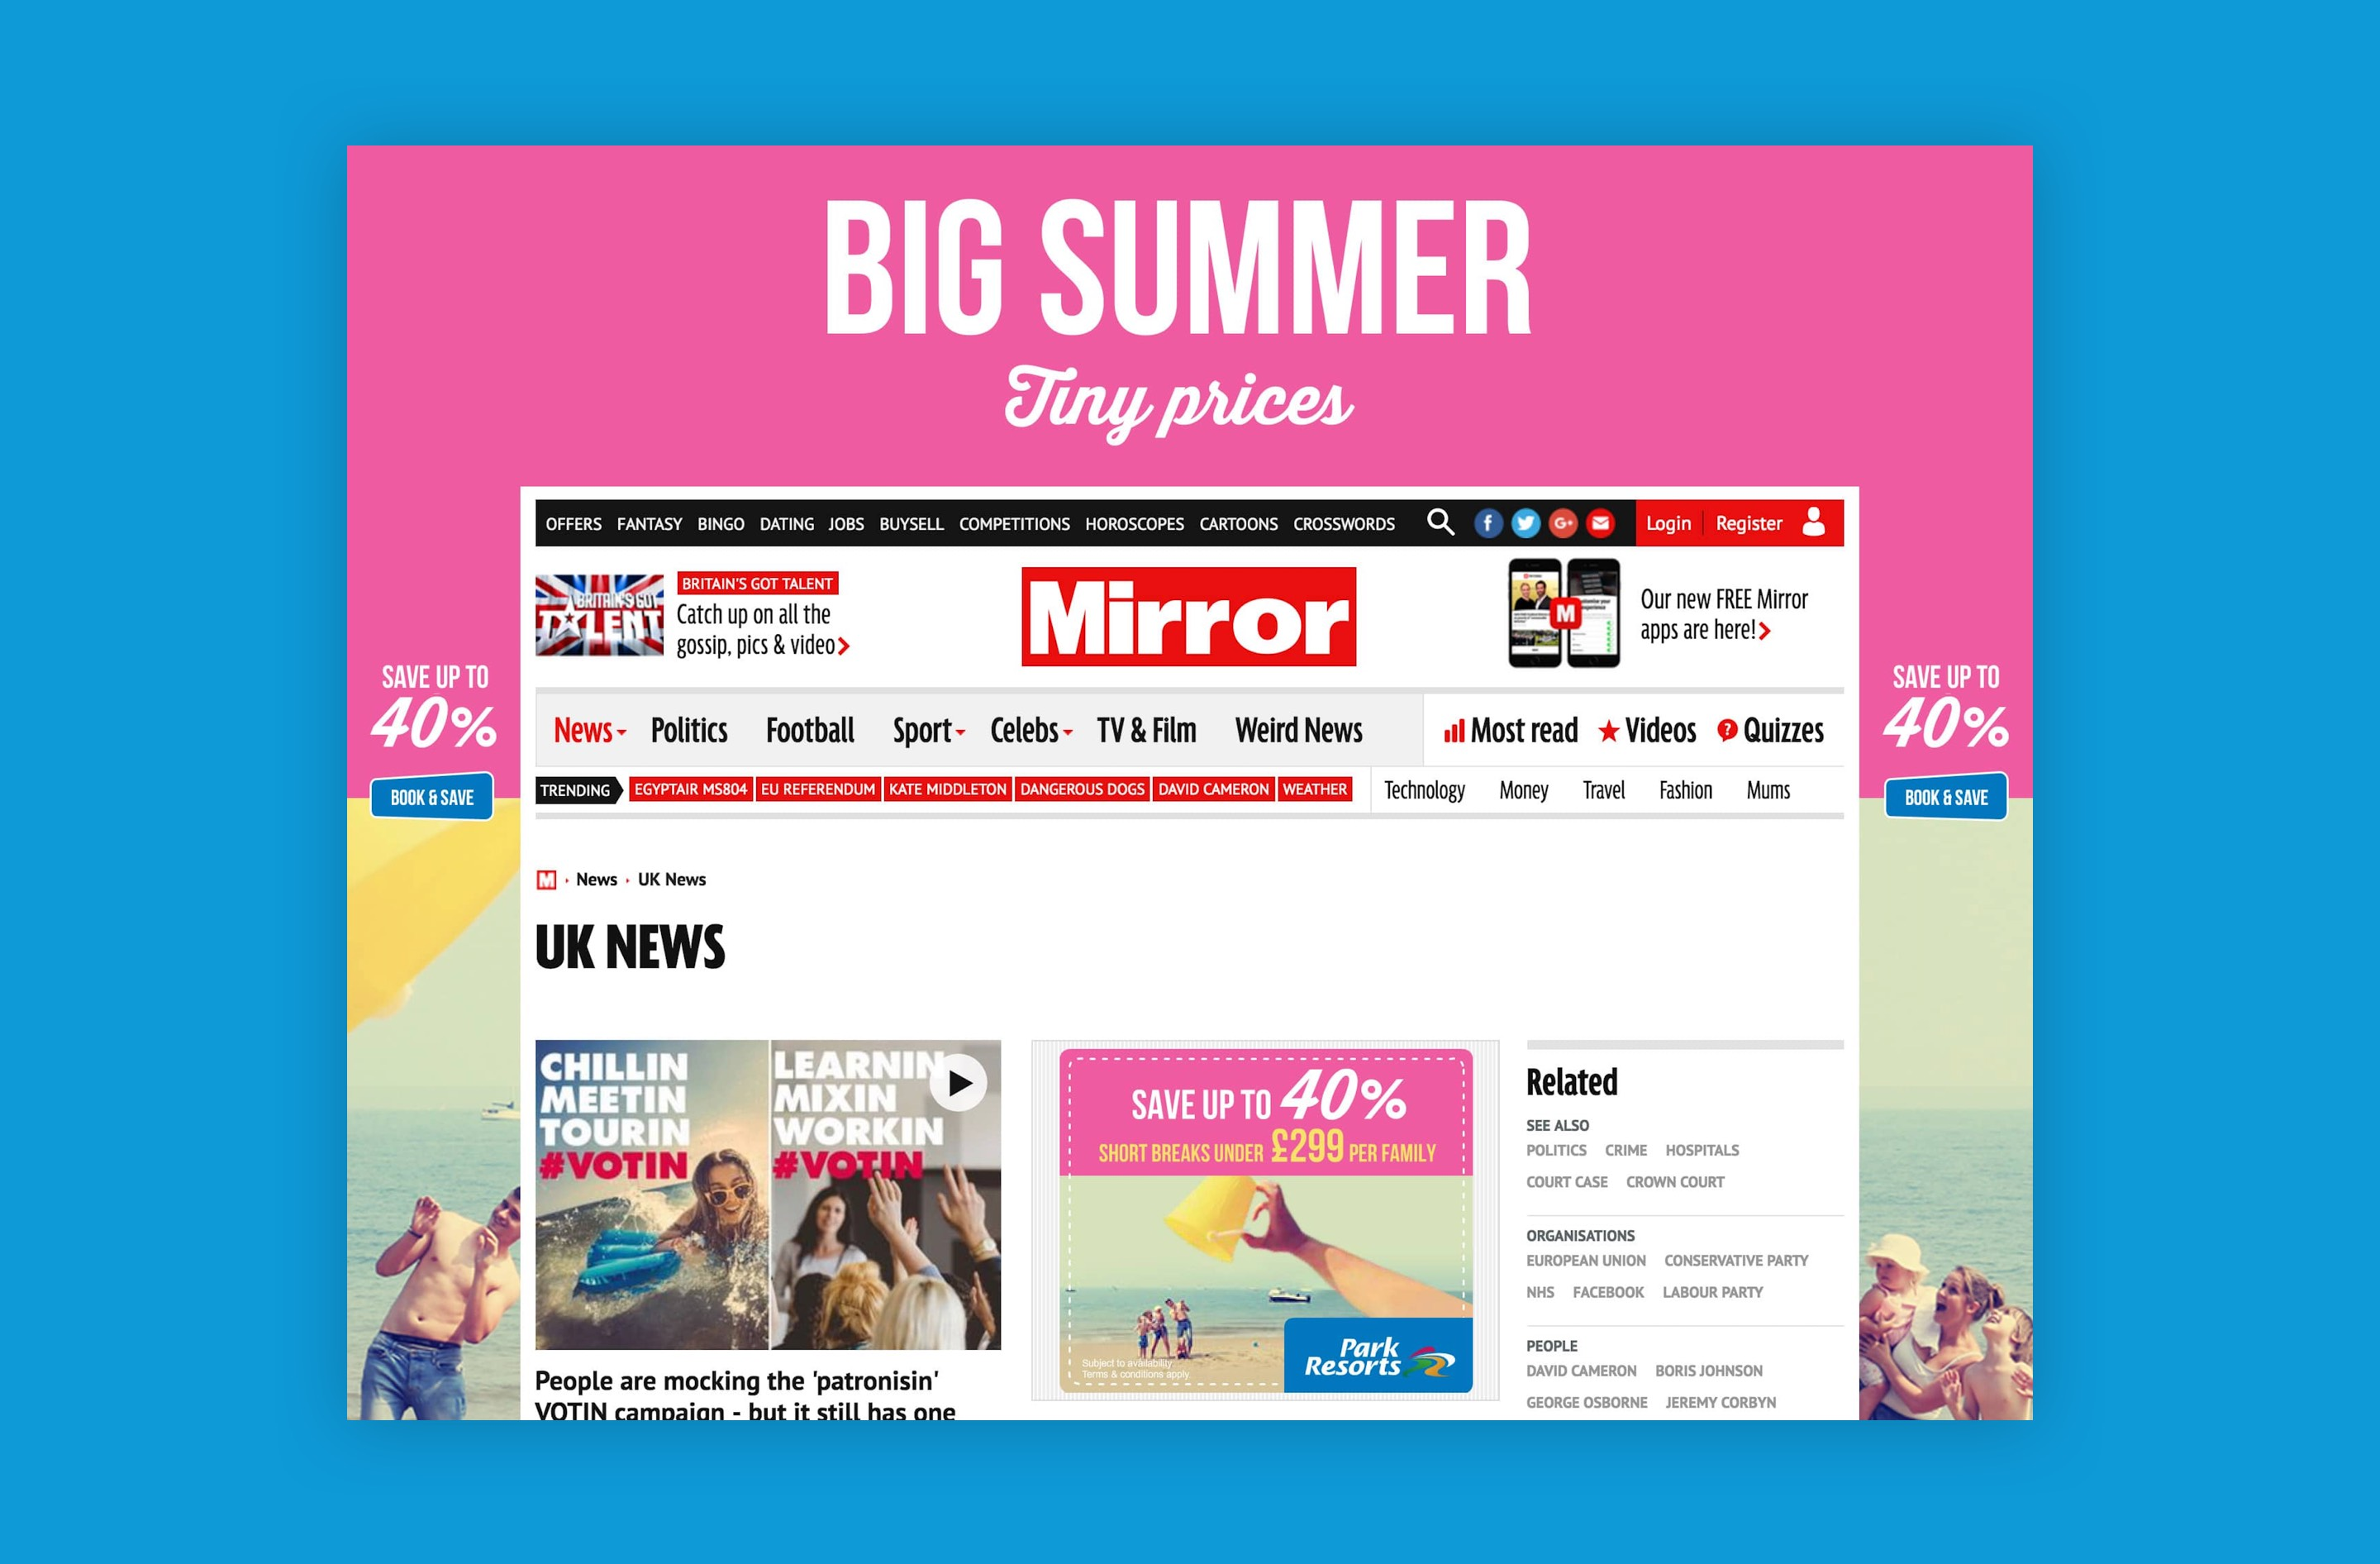 Our colourful online advertising design stood out